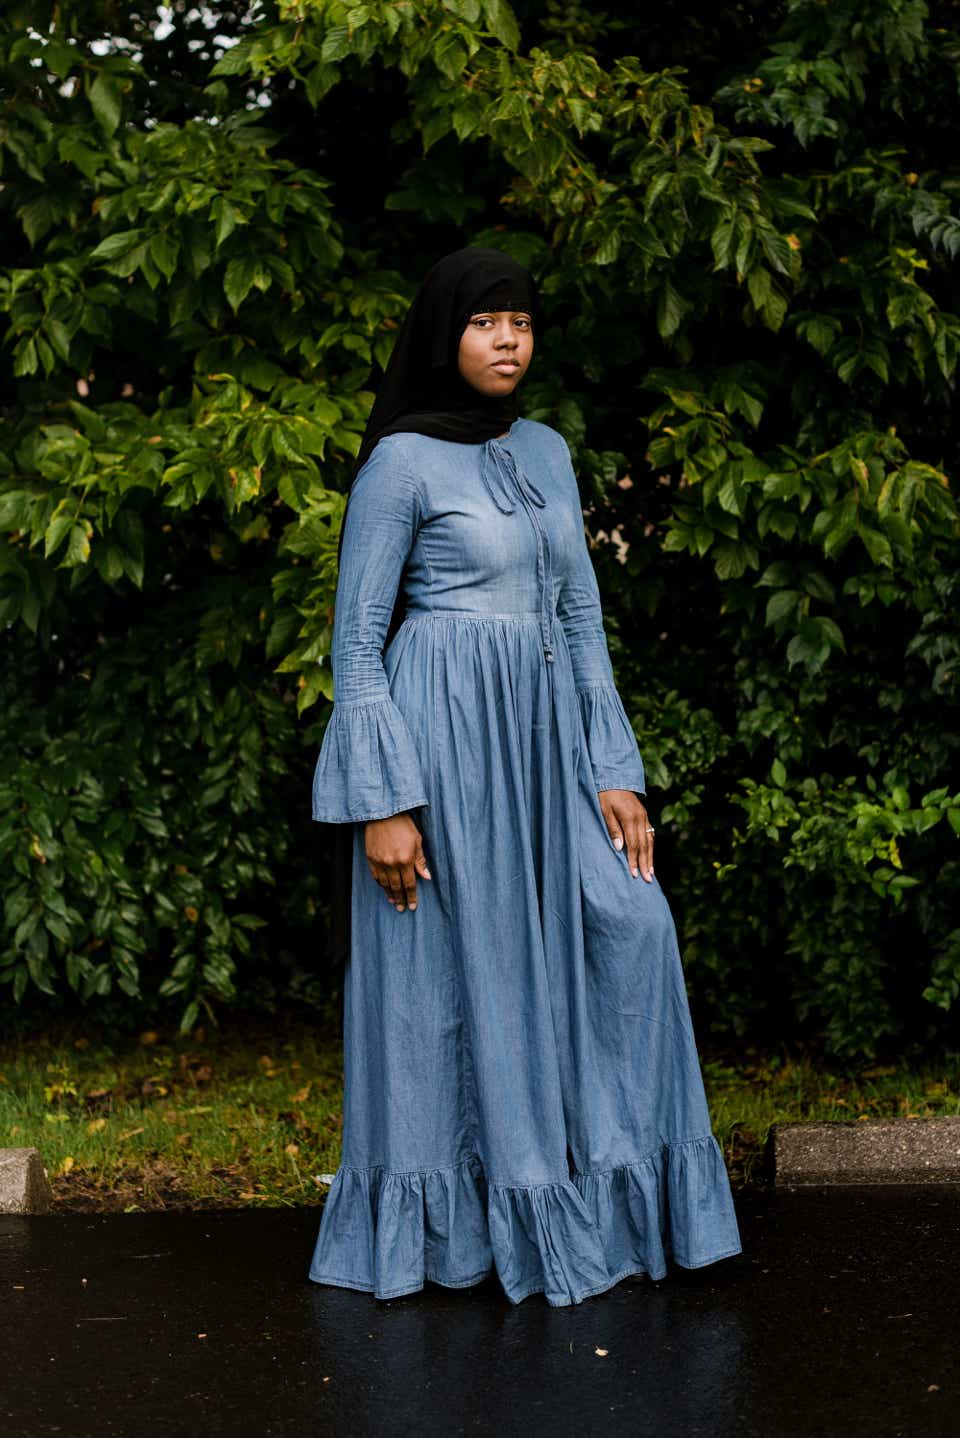 Brittany is wearing a black niqab with a blue chambray maxi dress with bell sleeves.